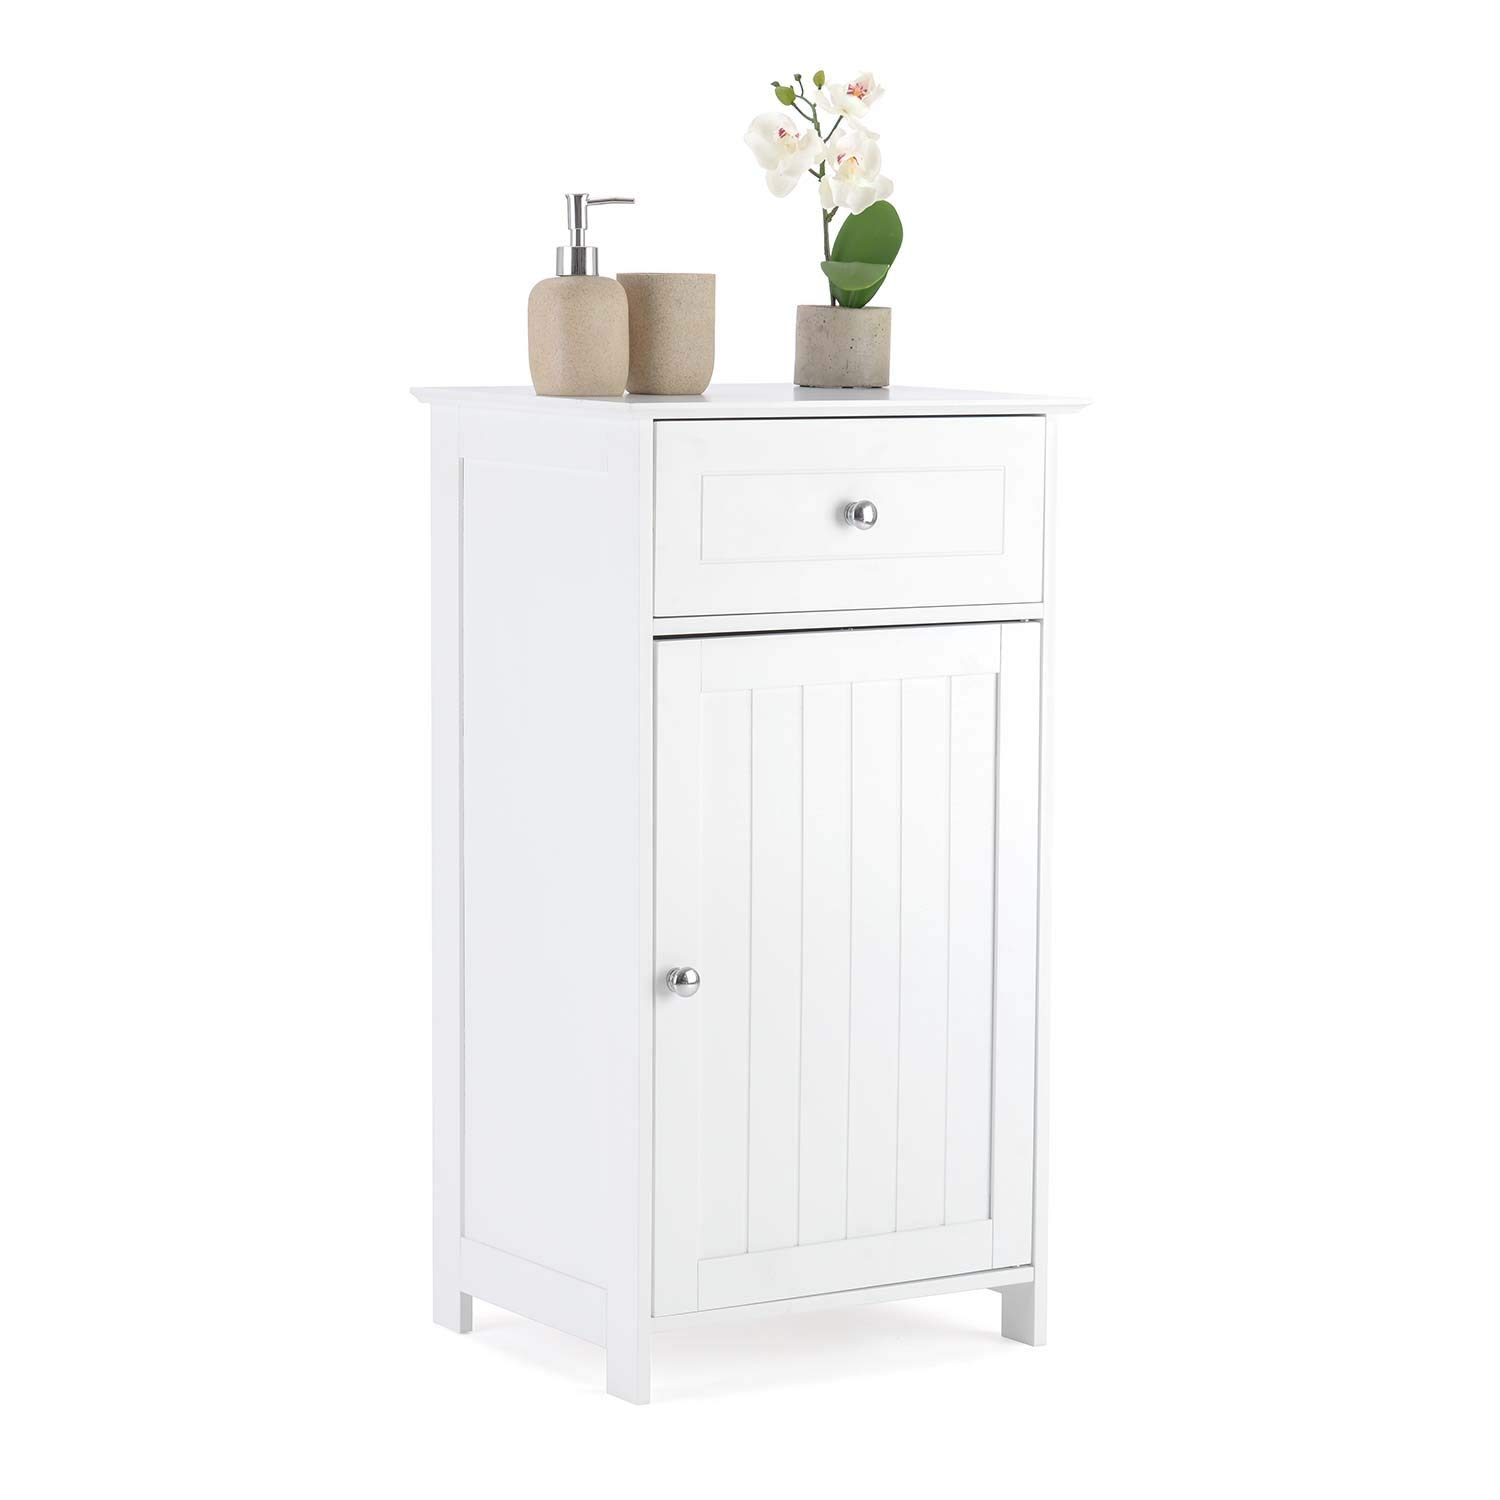 Christow Bathroom Drawer Cabinet Wooden White Single Door Storage Cupboard Unit